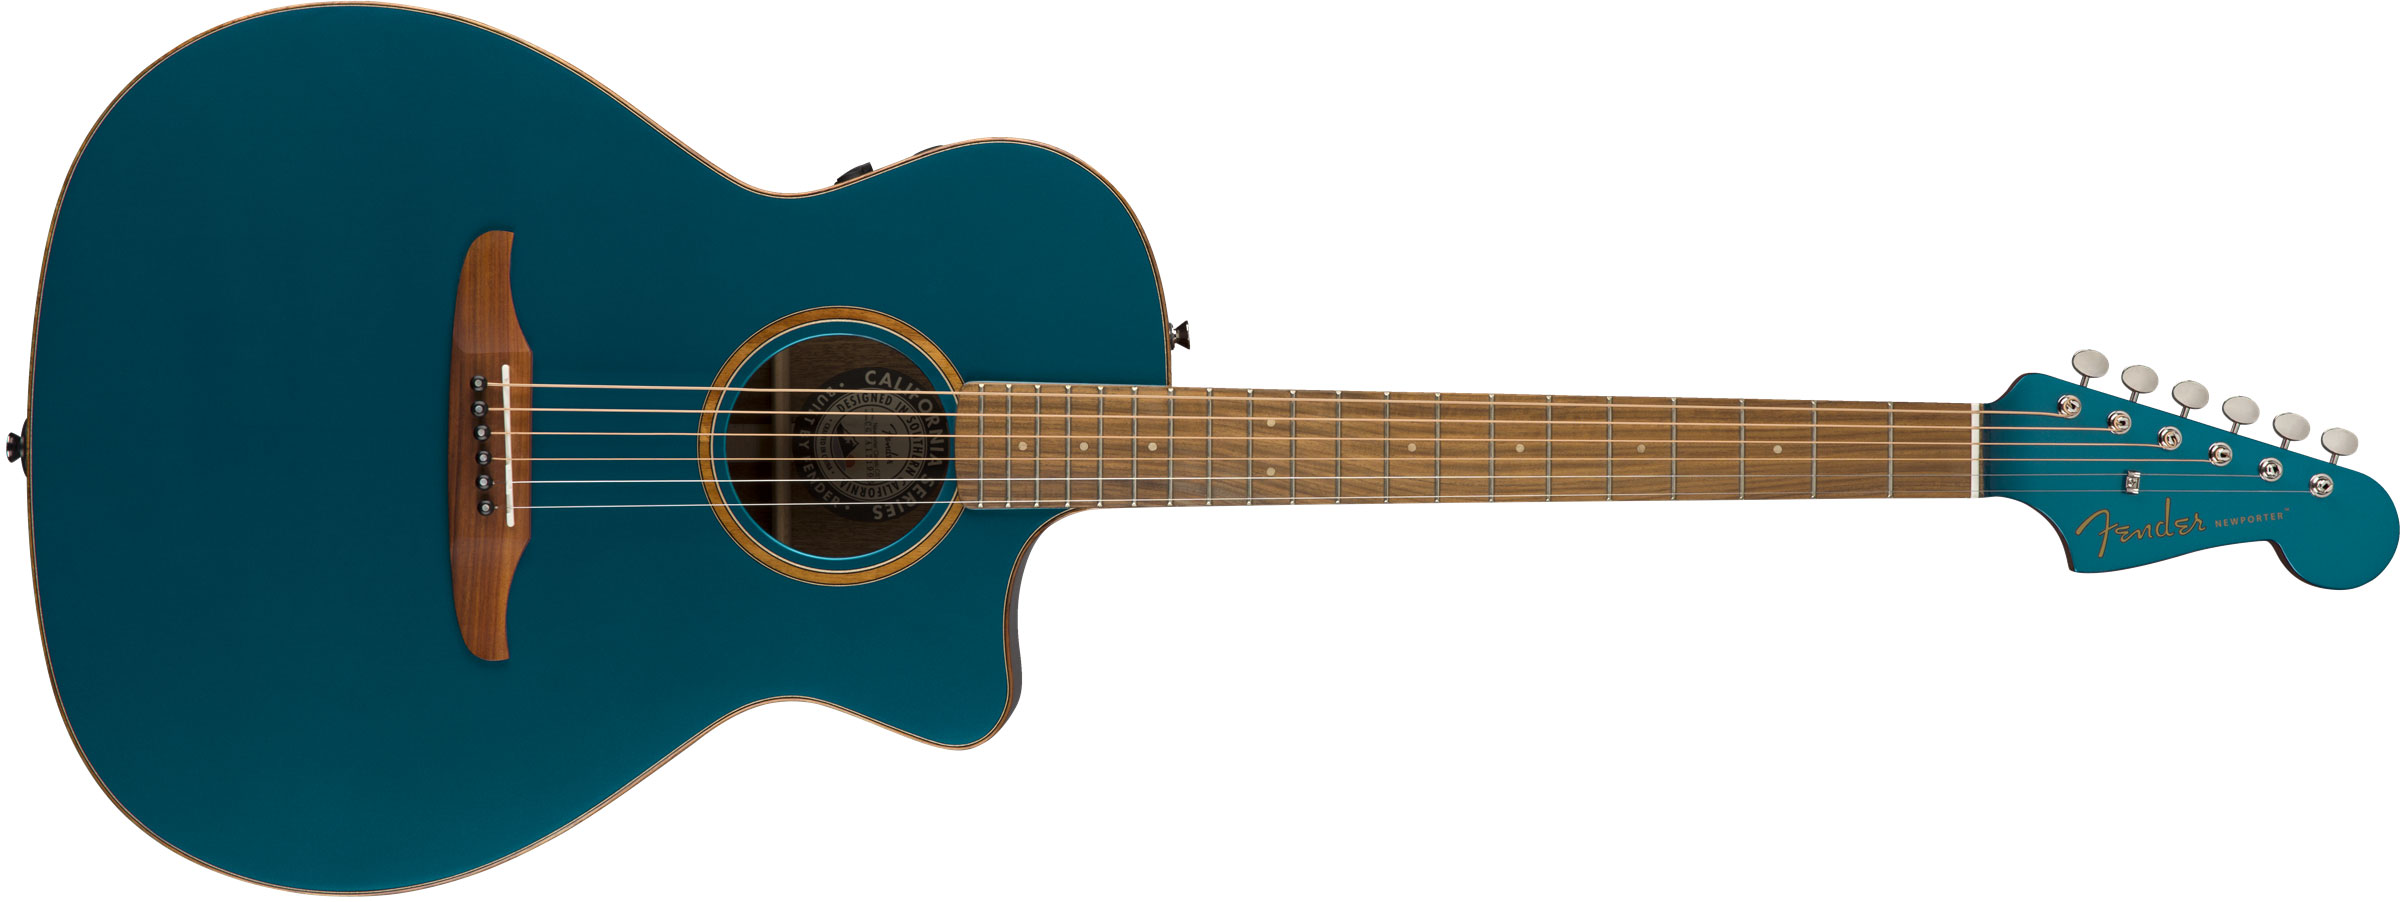 VIOL�O FENDER NEWPORTER CLASSIC W/ DELUXE GIG BAG 097-0943-299 COSMIC TURQUOISE